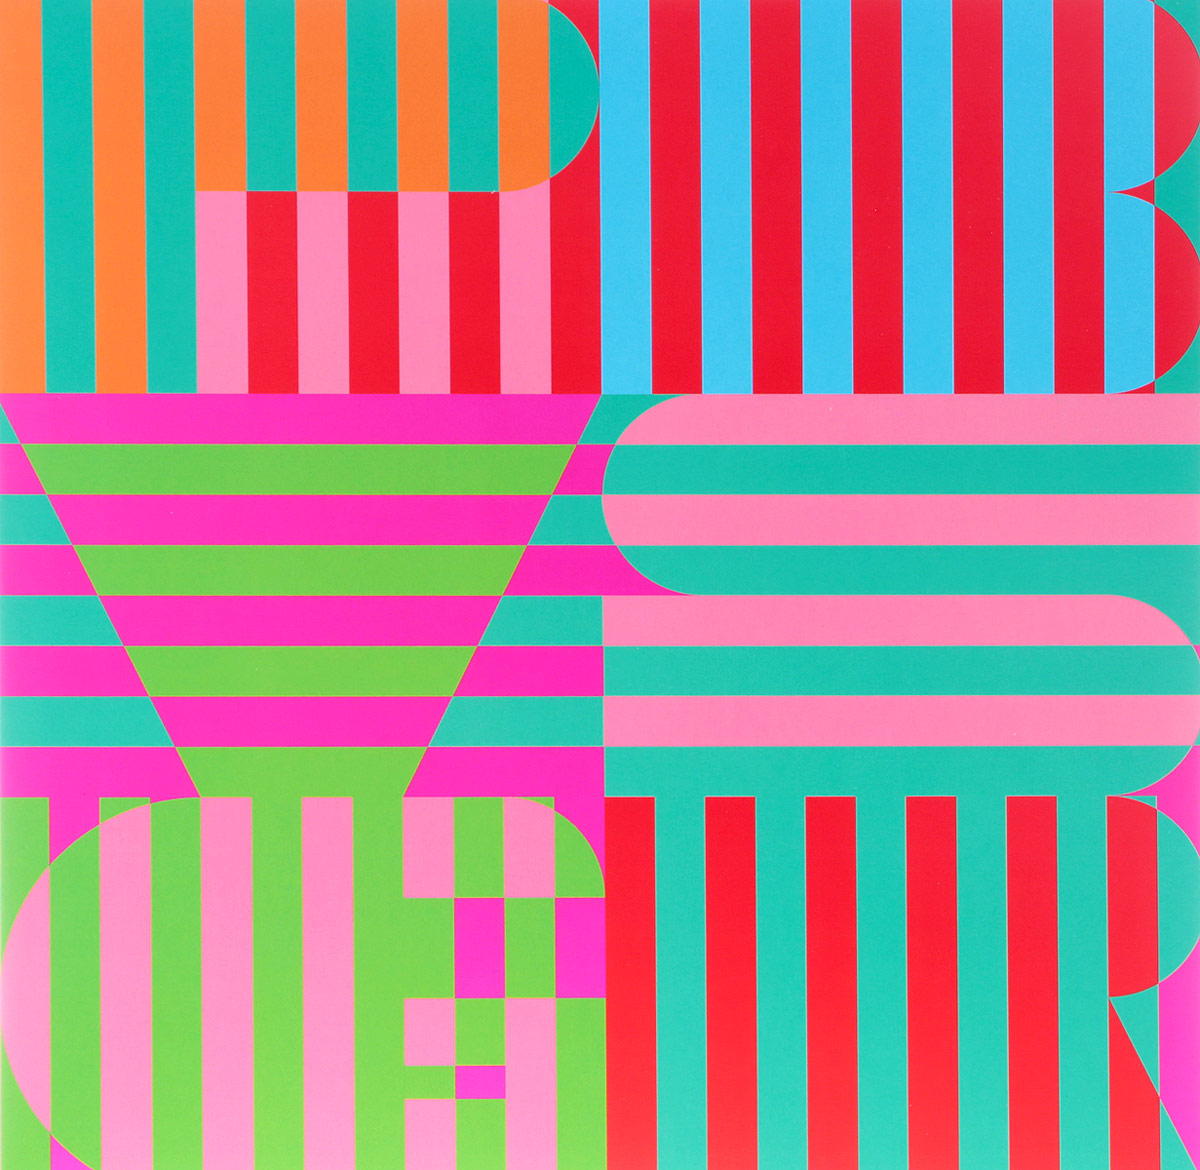 Panda Bear Panda Bear. Panda Bear Meets The Grim Reaper (2 LP) james yorkston the cellardyke recording and wassailing society 2 lp